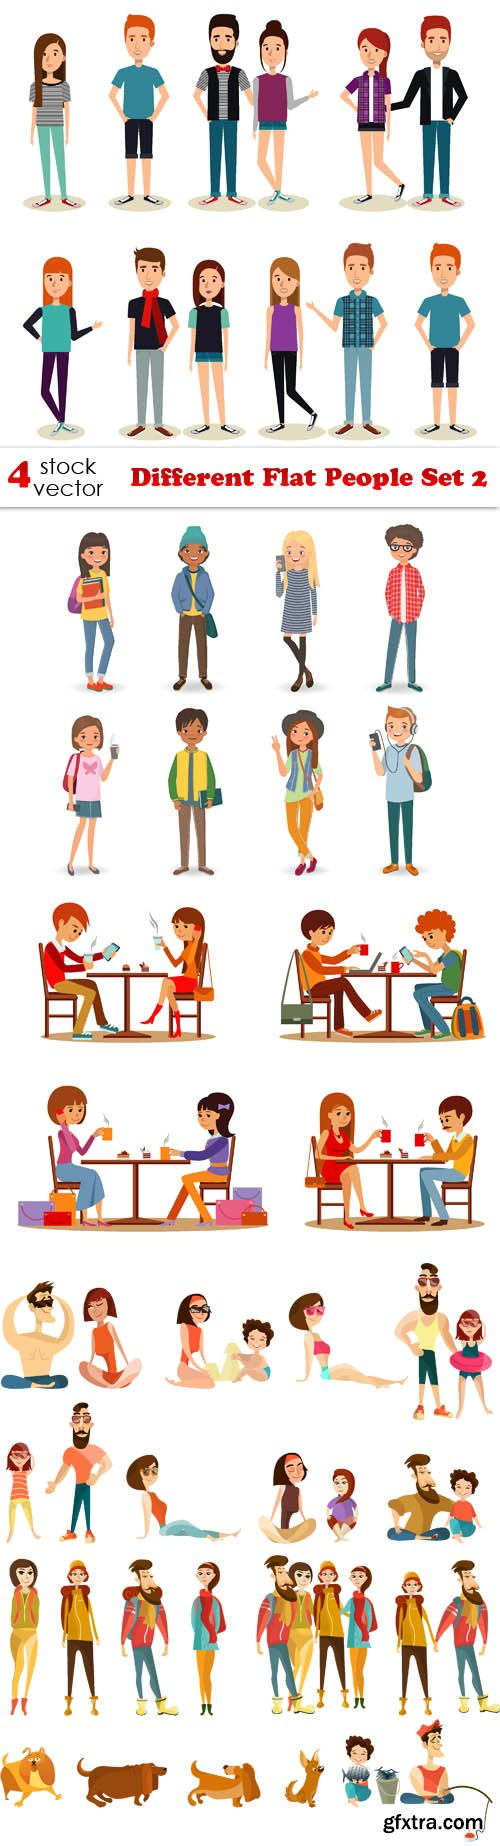 Vectors - Different Flat People Set 2